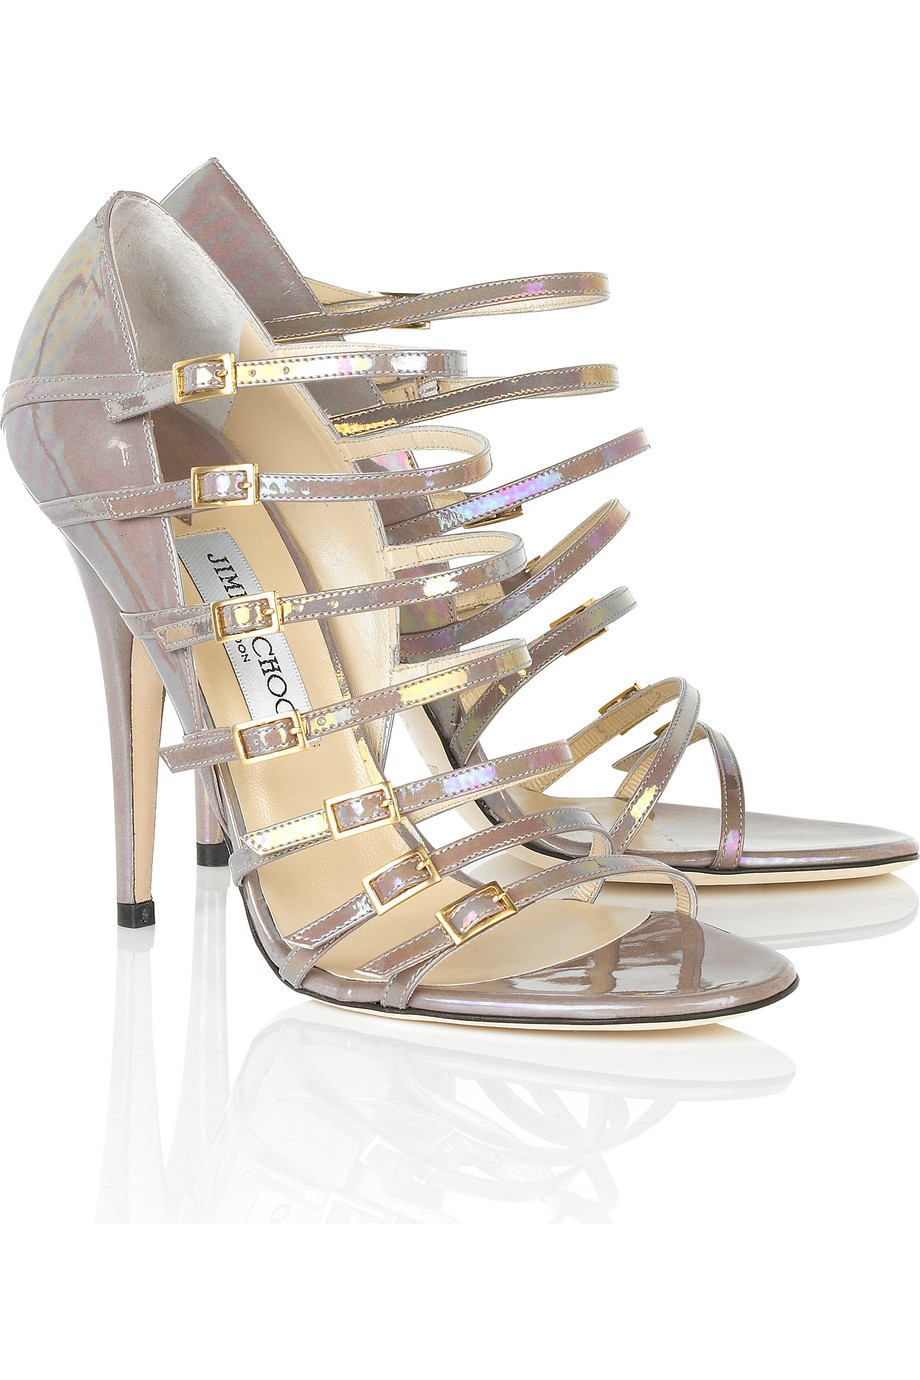 Greece Jimmy Choo Sandals - Product 31050